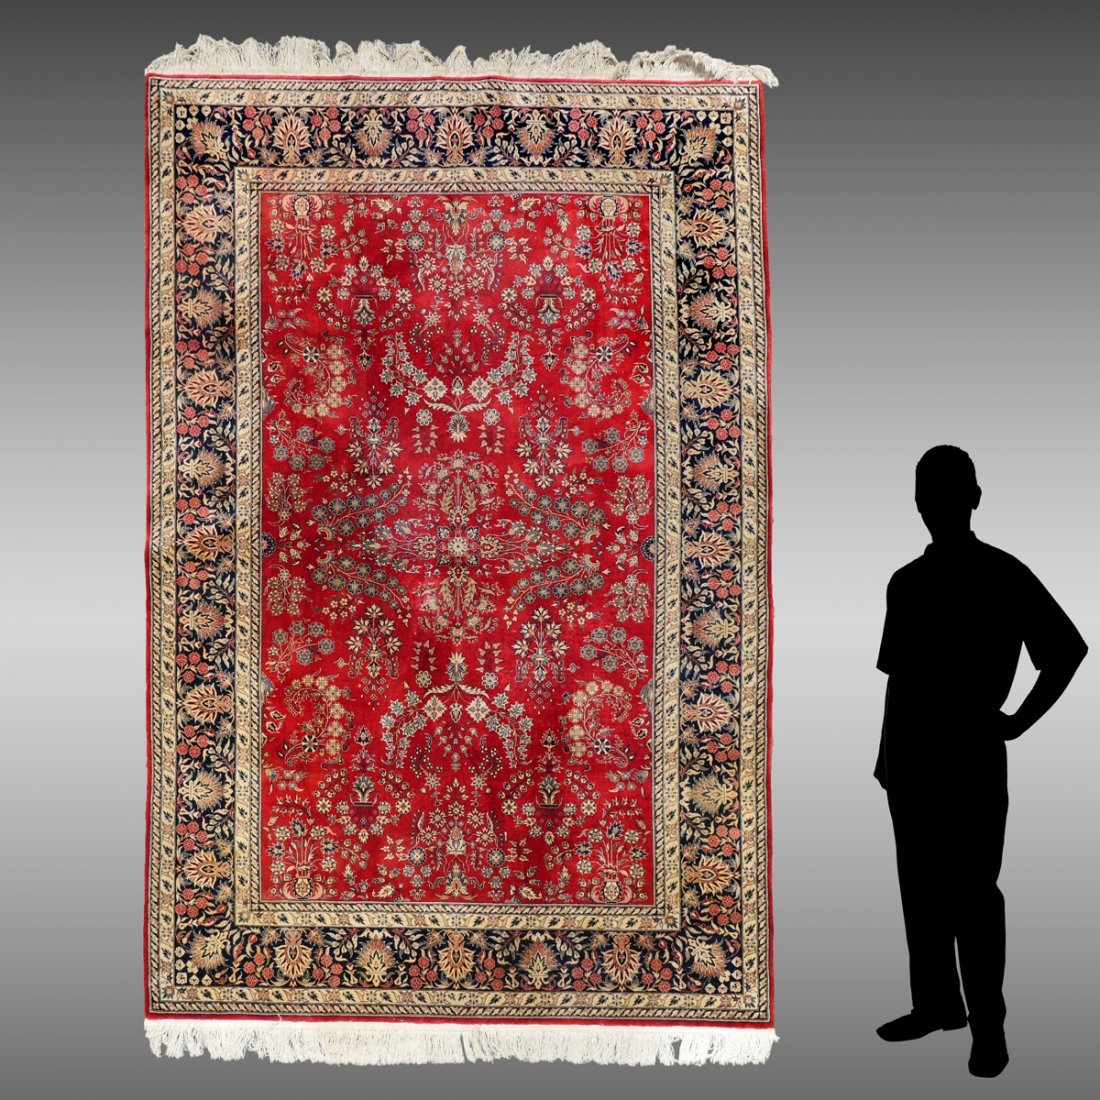 FINELY HAND KNOTTED WOOL PERSIAN RUG, 5